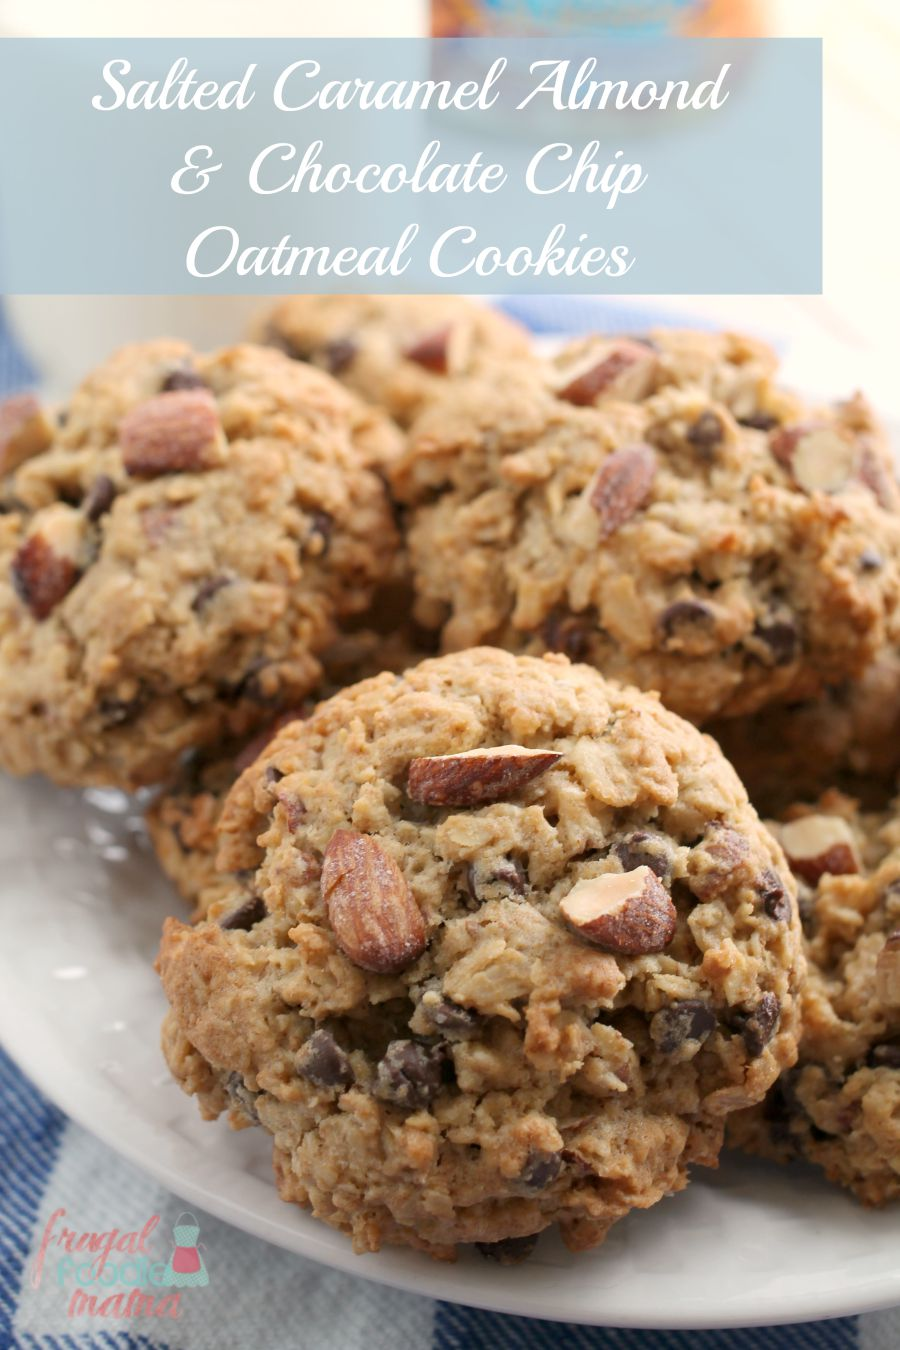 ... Salted Caramel Almond & Chocolate Chip Oatmeal Cookies . This post is